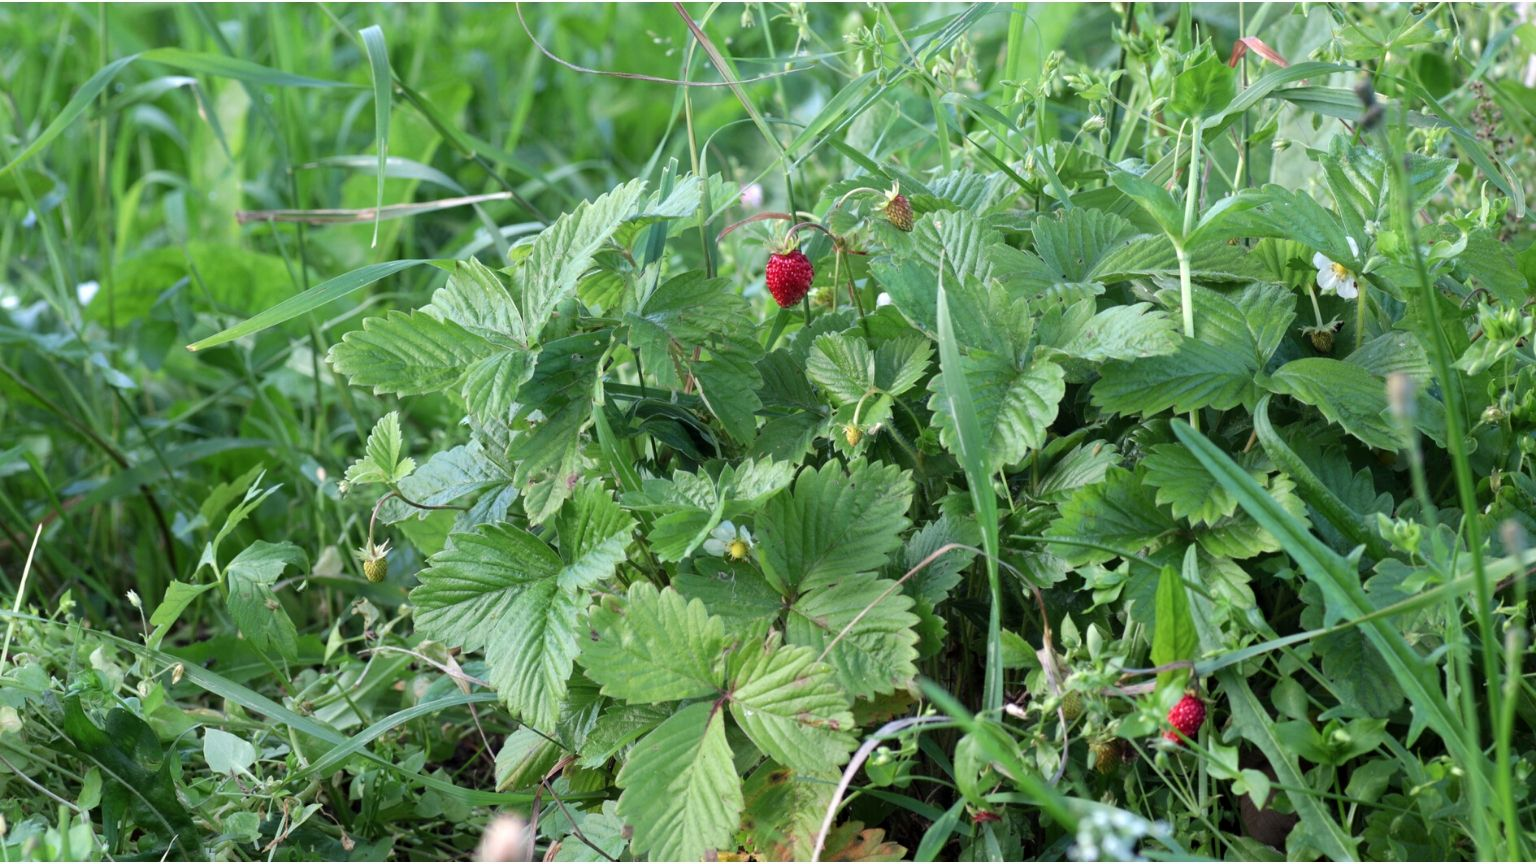 What to Forage in July - The Best Wild Edible Plants To Gather